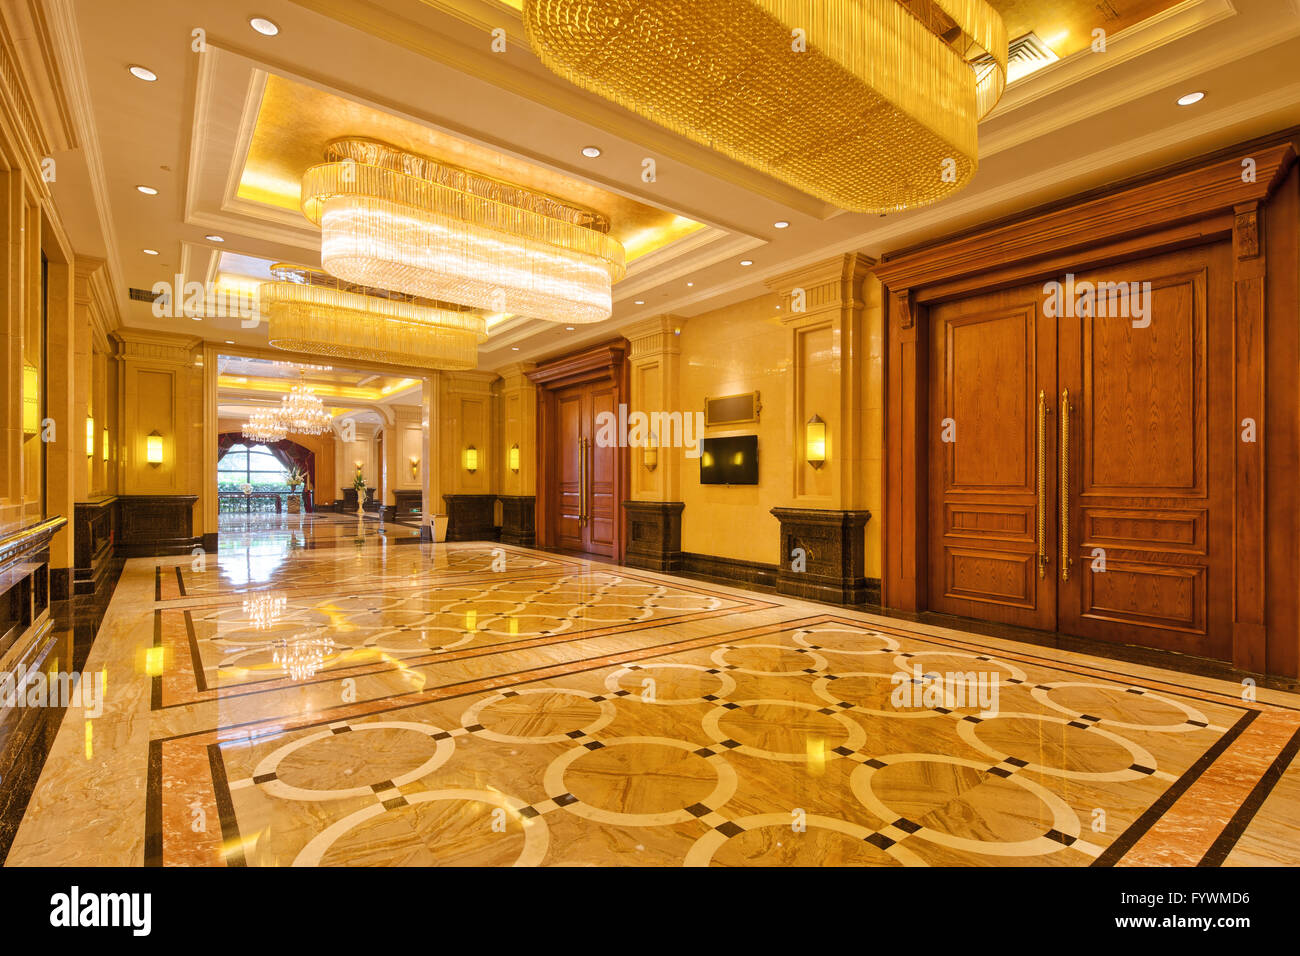 Interior Of Luxury Entrance Hall Stock Photo Royalty Free